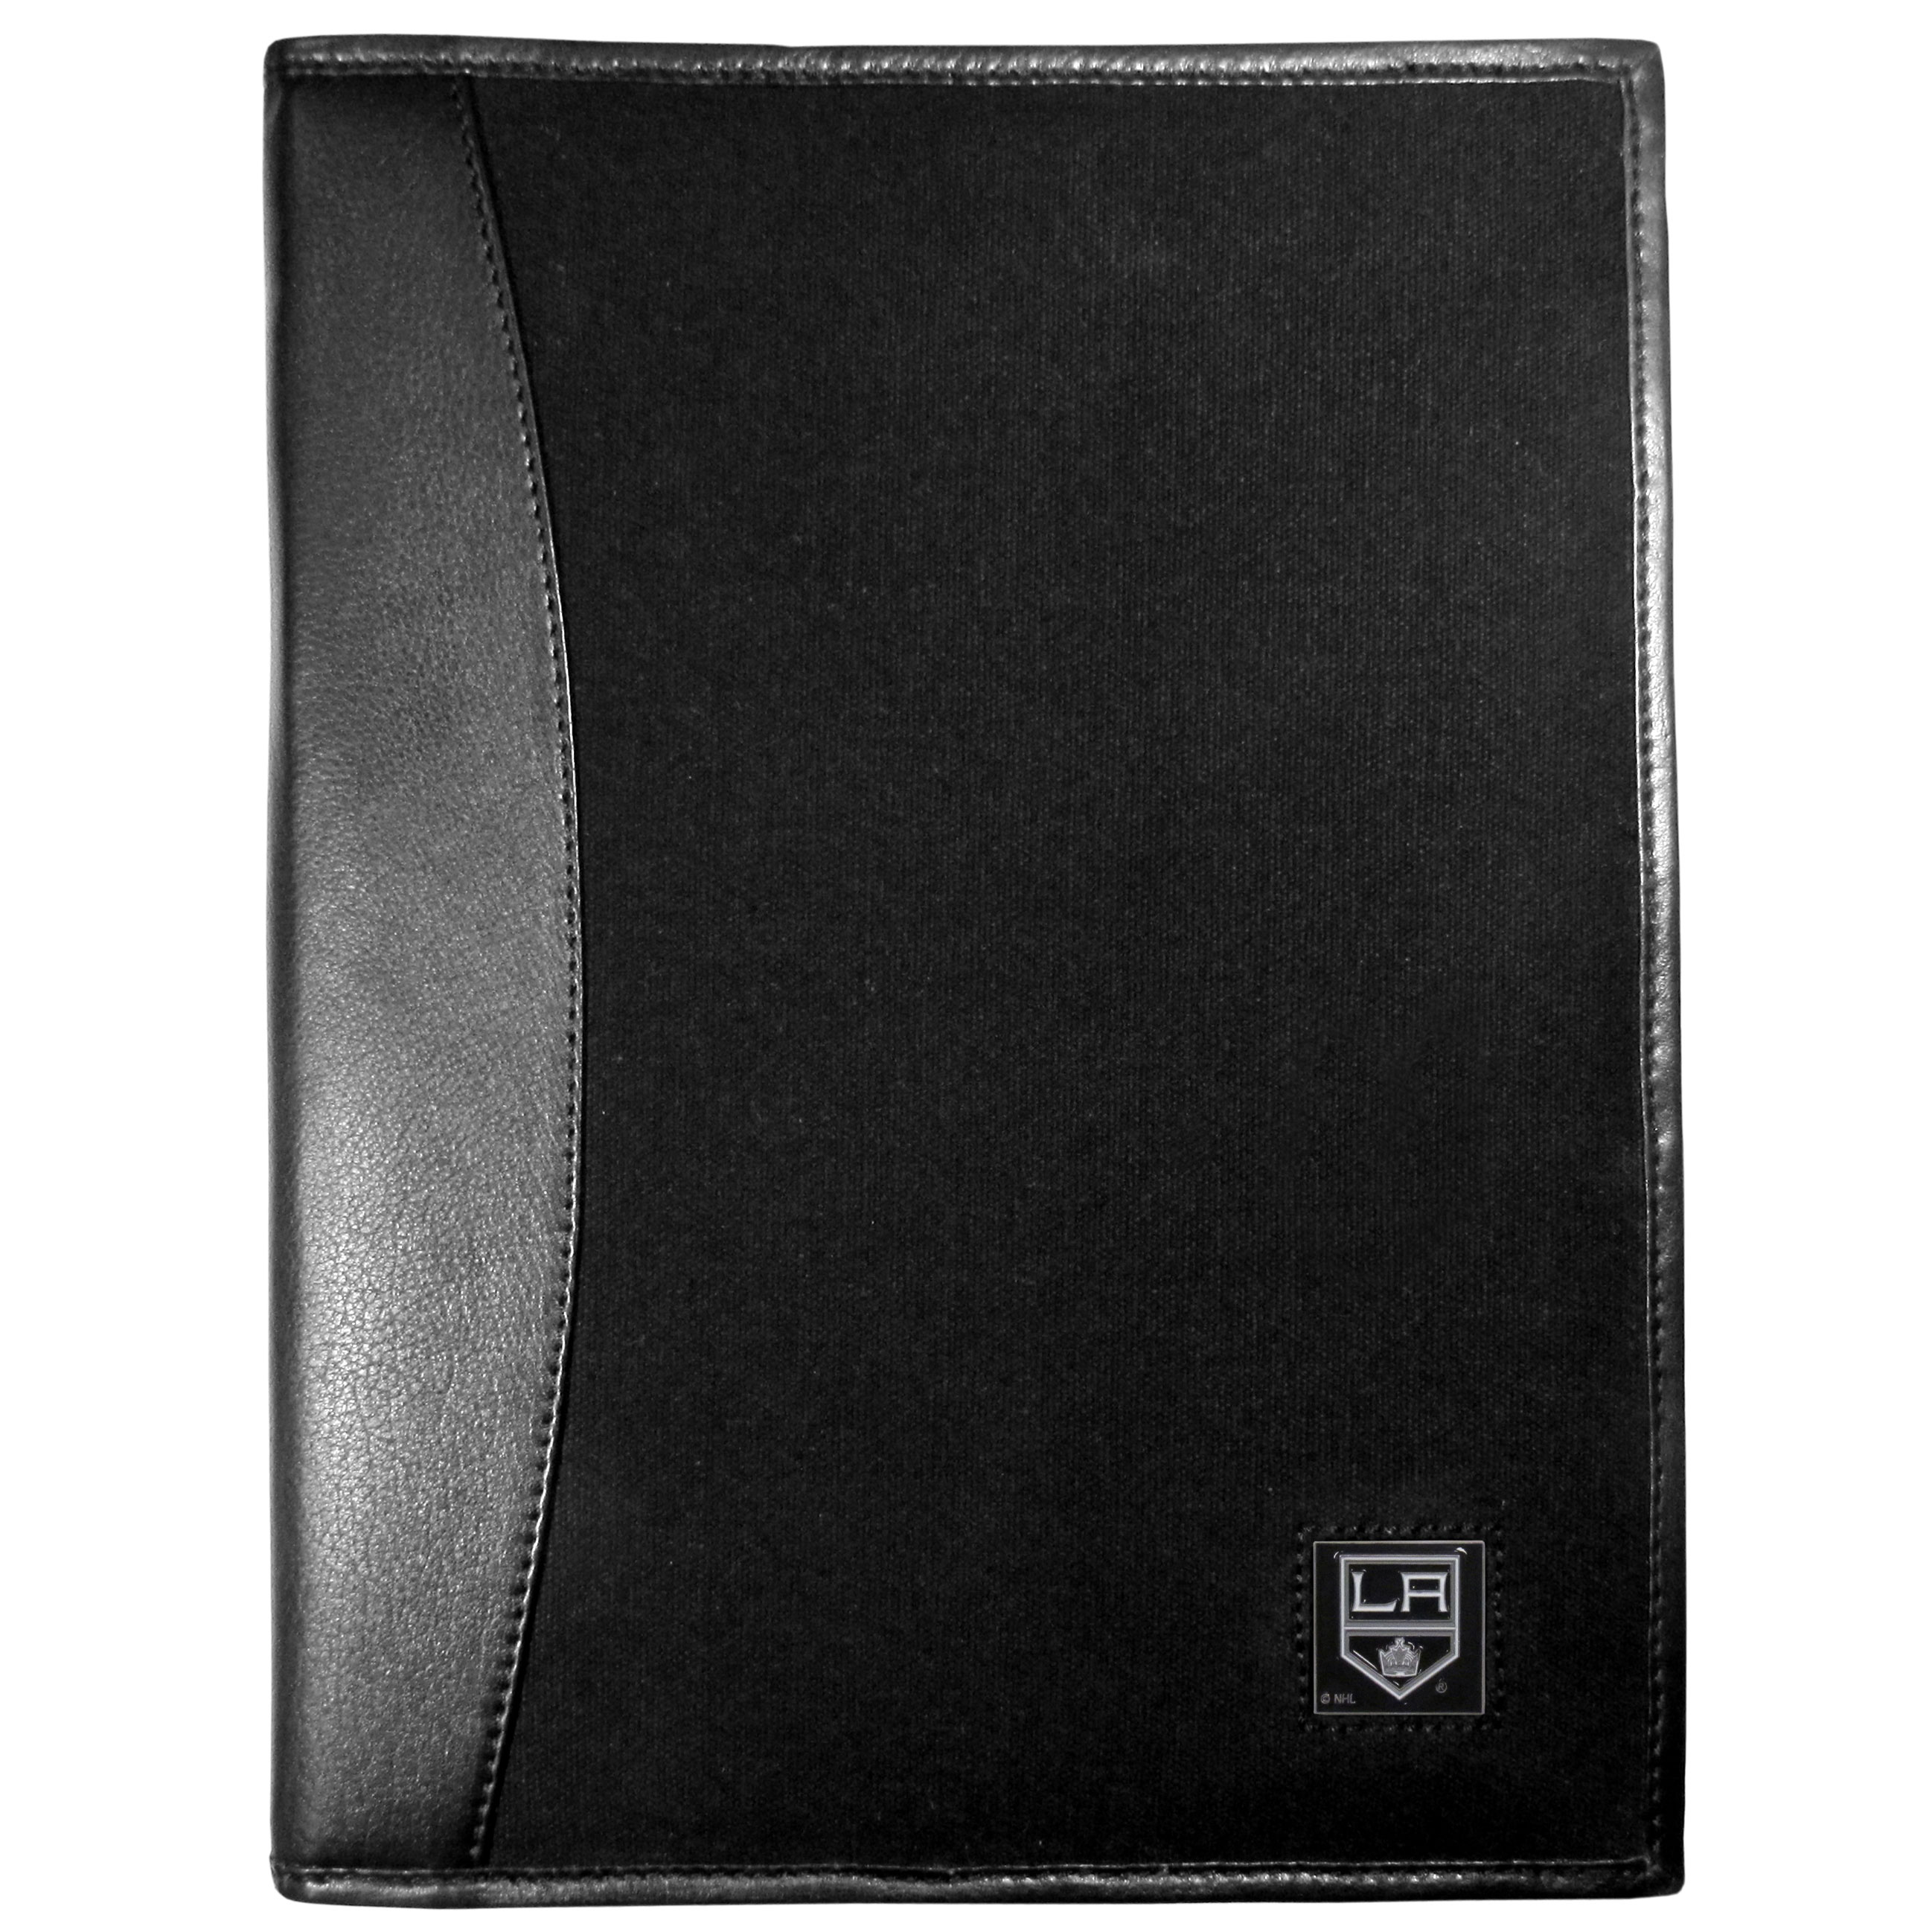 Los Angeles Kings® Leather and Canvas Padfolio - Our leather and canvas padfolio perfectly blends form and function. The attractive portfolio is bound in fine grain leather with an attractive canvas finish and the interior is a soft nylon. This high quality business accessory also features a fully cast metal Los Angeles Kings® emblem that is subtly set in the corner of the organizer. It is packed with features like 6 card slots for badges, business cards, hotel keys or credit cards and ID with a large pocket for loose papers and a writing tablet slot making it a must-have for the professional on the go.